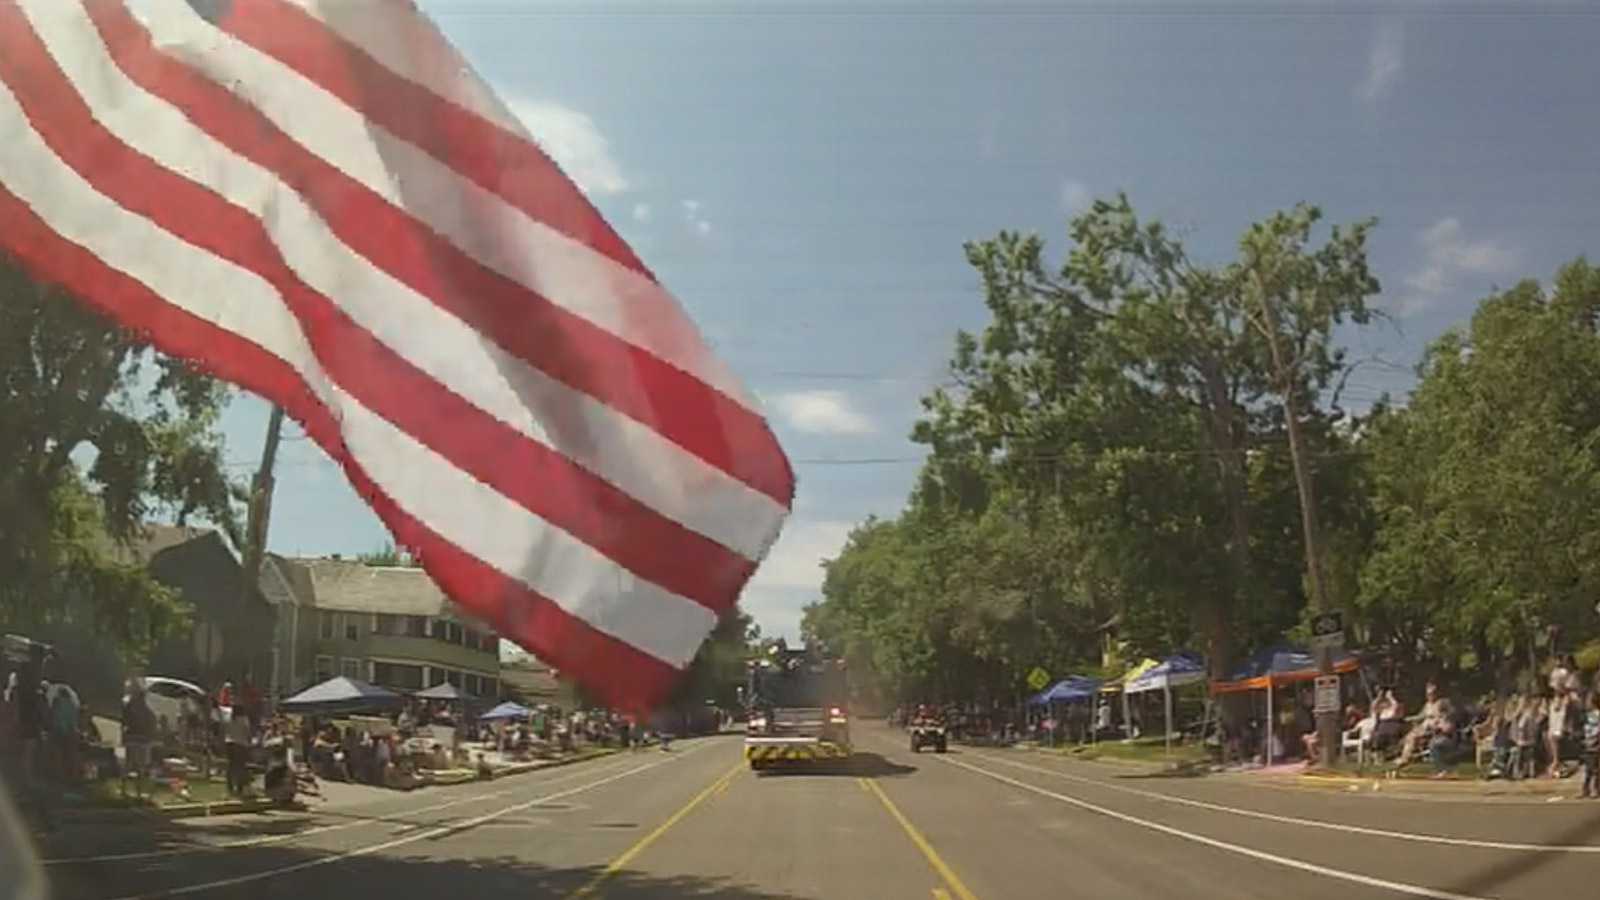 The Mobile Weather Lab was featured in the Greeley Stampede Parade (credit: CBS)